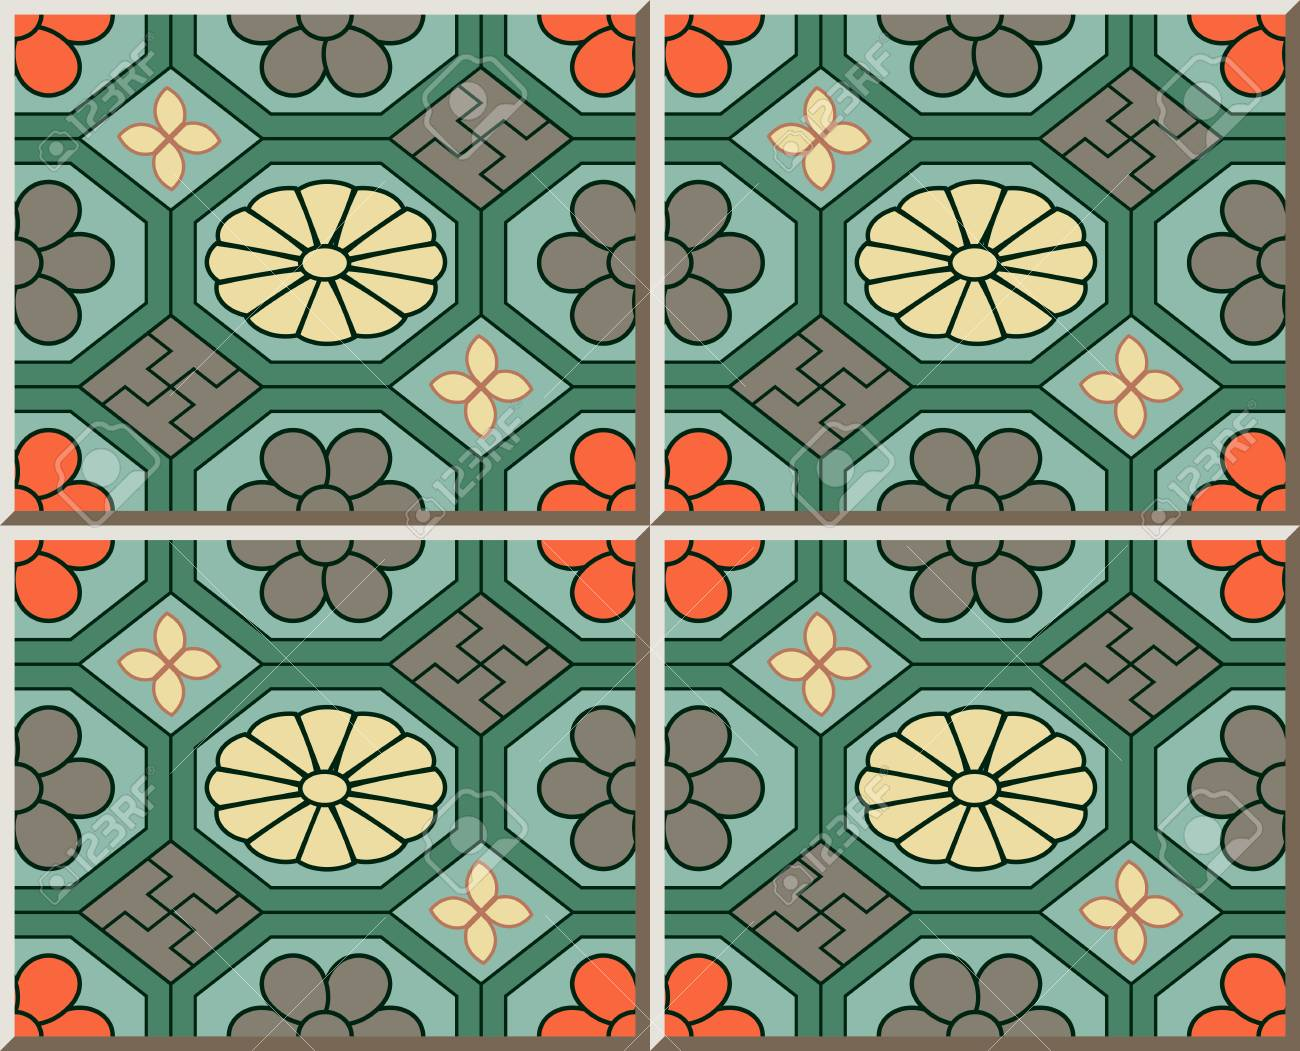 Ceramic tile pattern retro green oriental octagon check cross ceramic tile pattern retro green oriental octagon check cross frame flower stock vector 77883022 dailygadgetfo Image collections